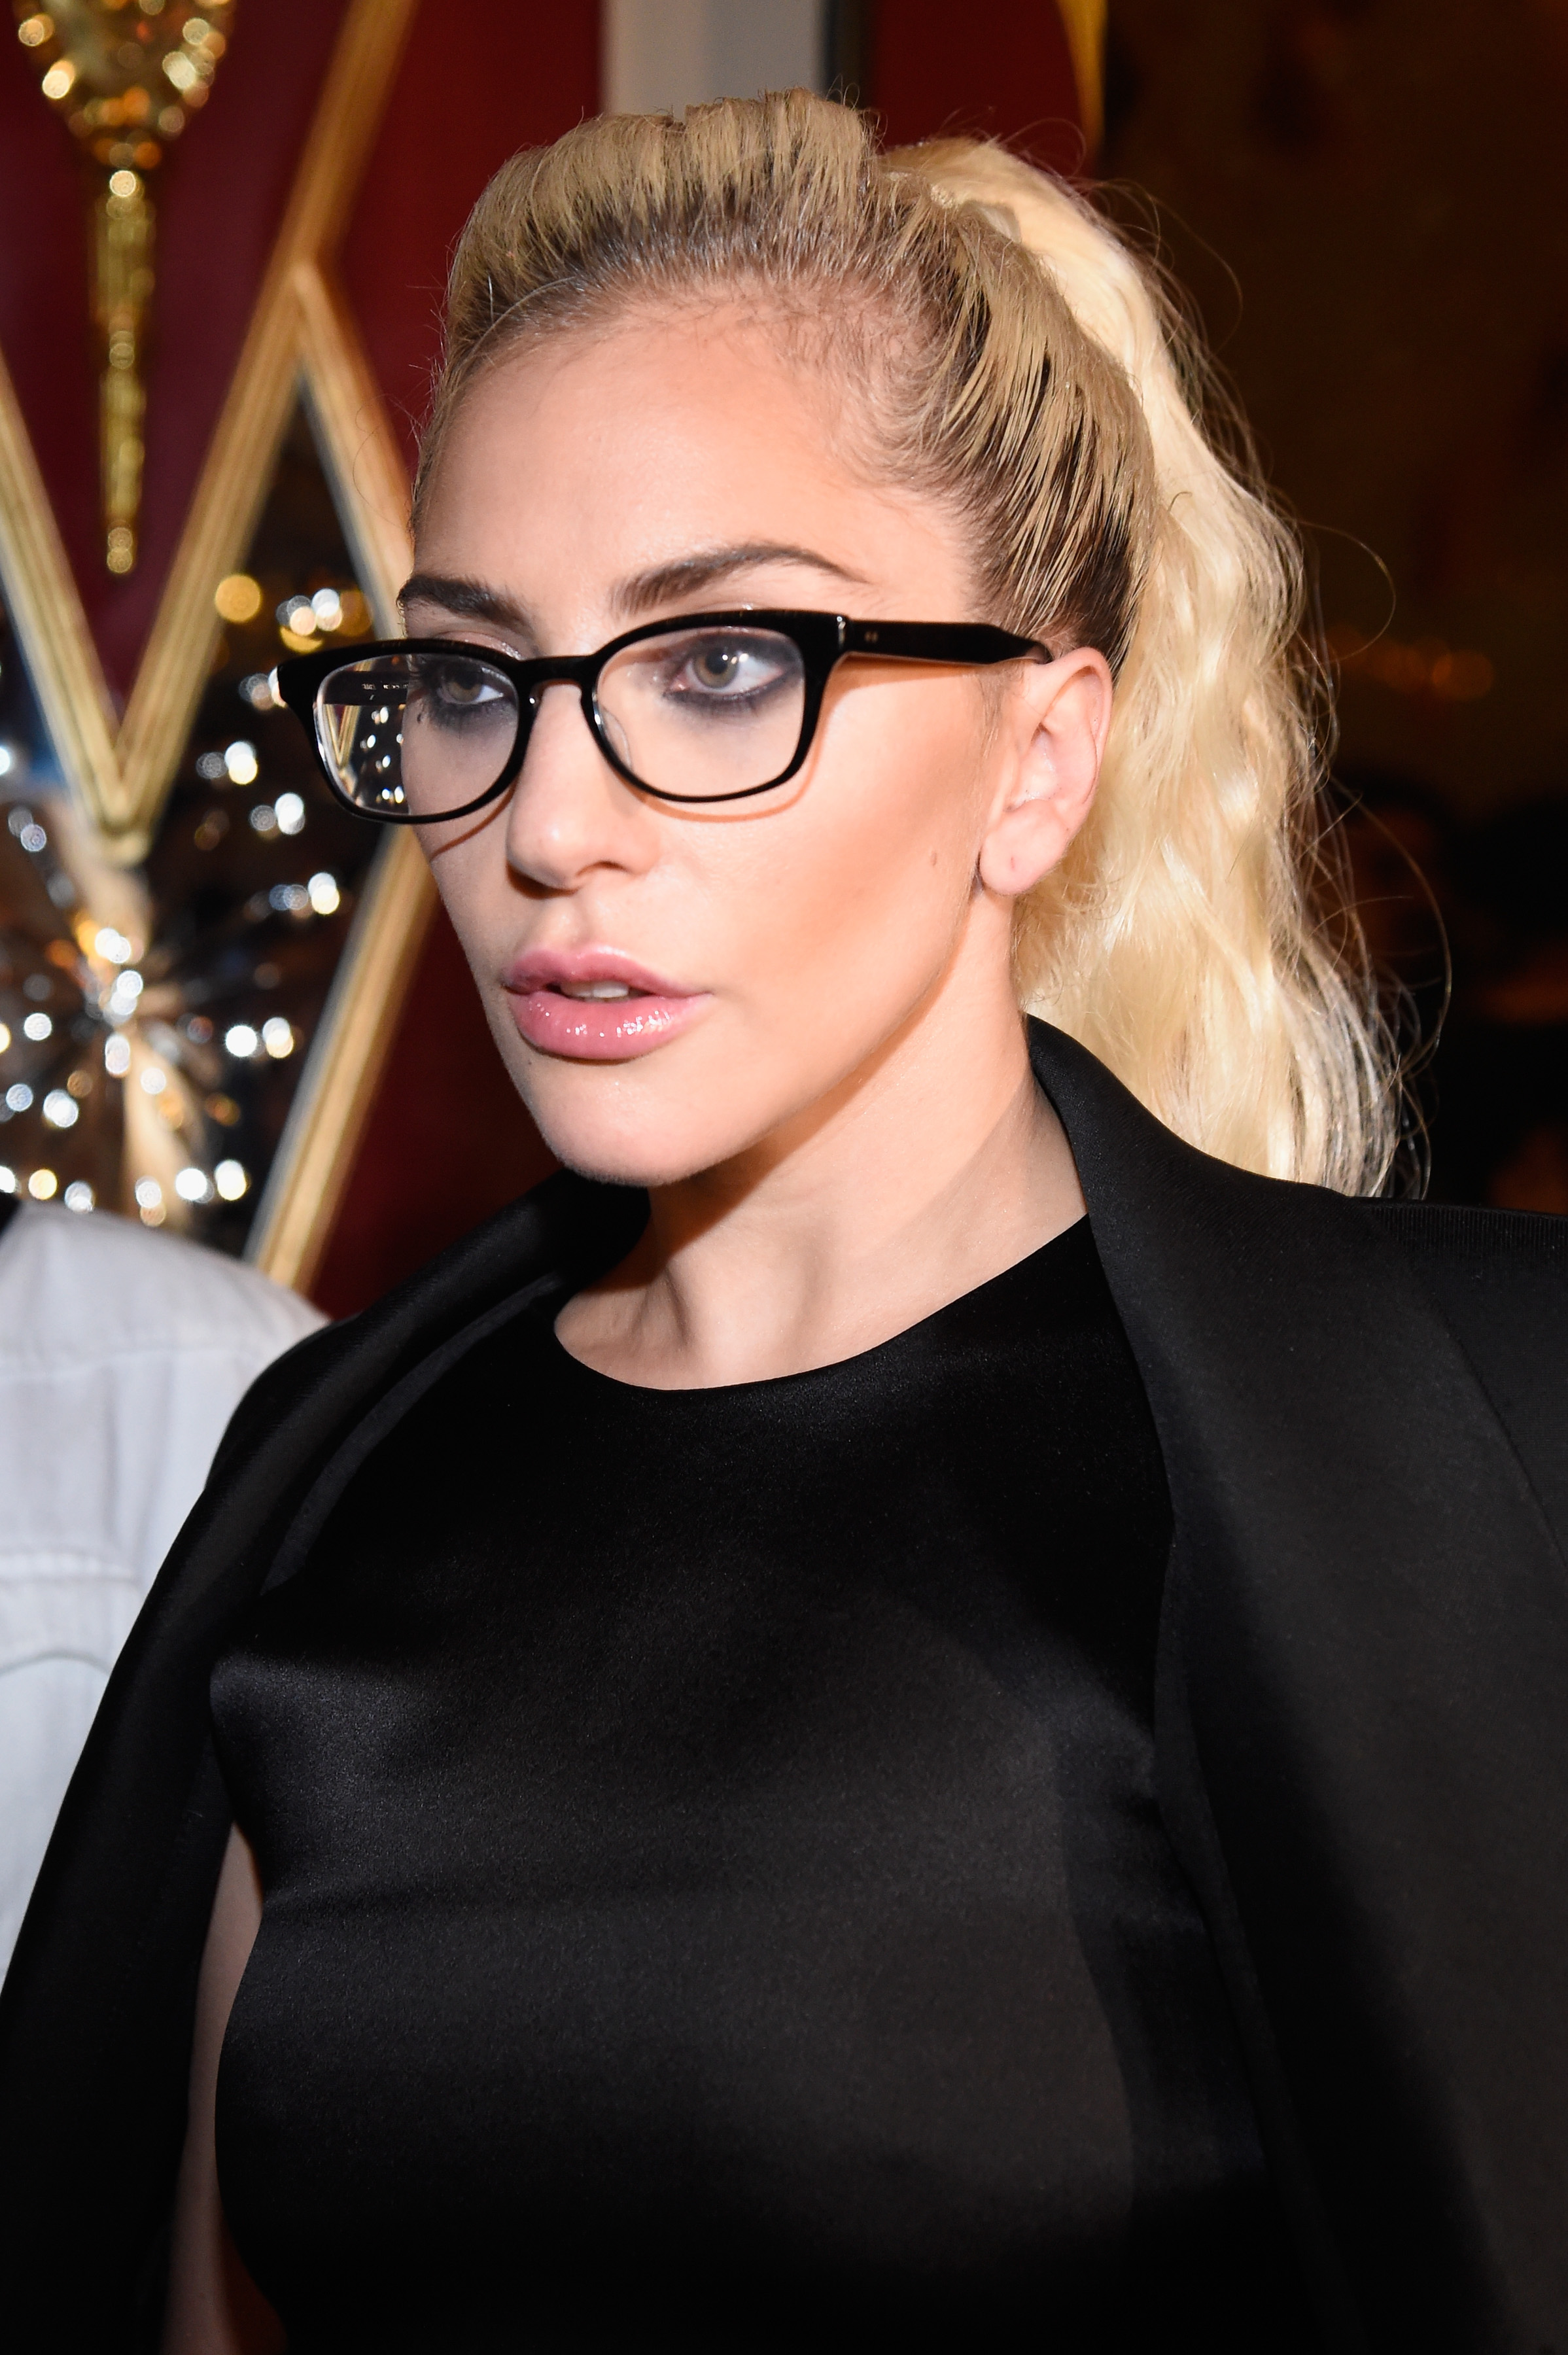 Just So You Know Lady Gaga Just Got Glasses And She Looks